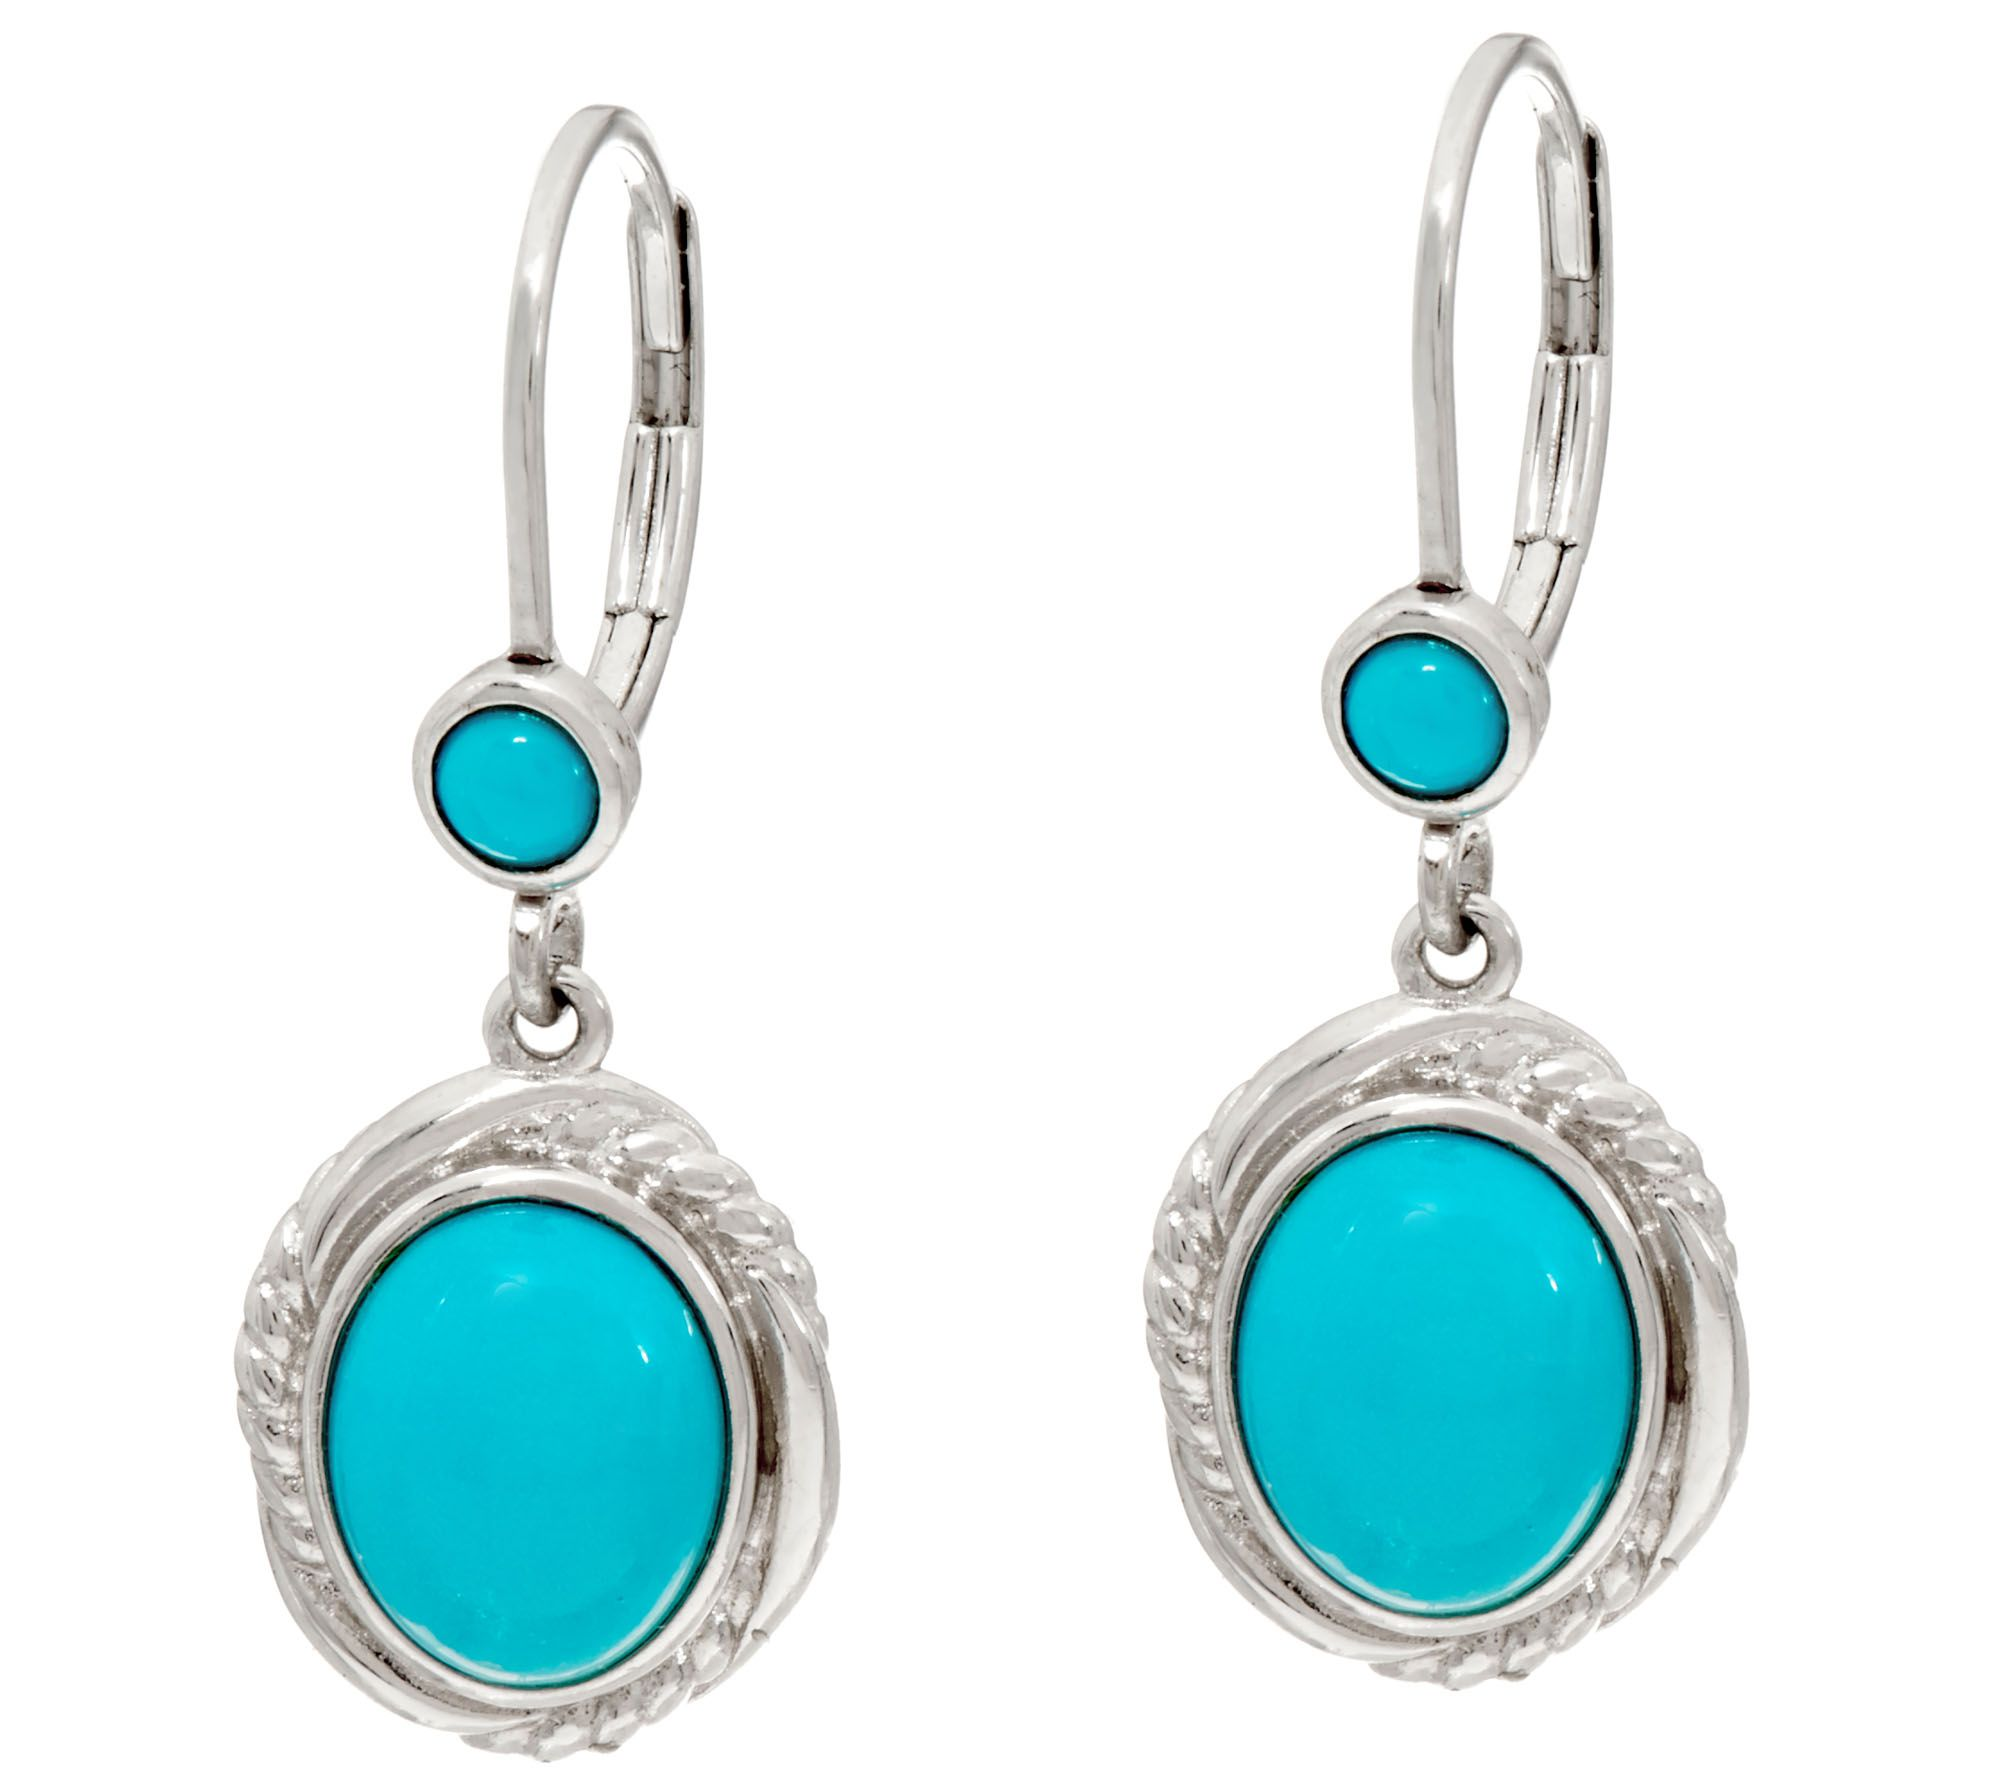 gabriella turquoise good company earrings earring kiss